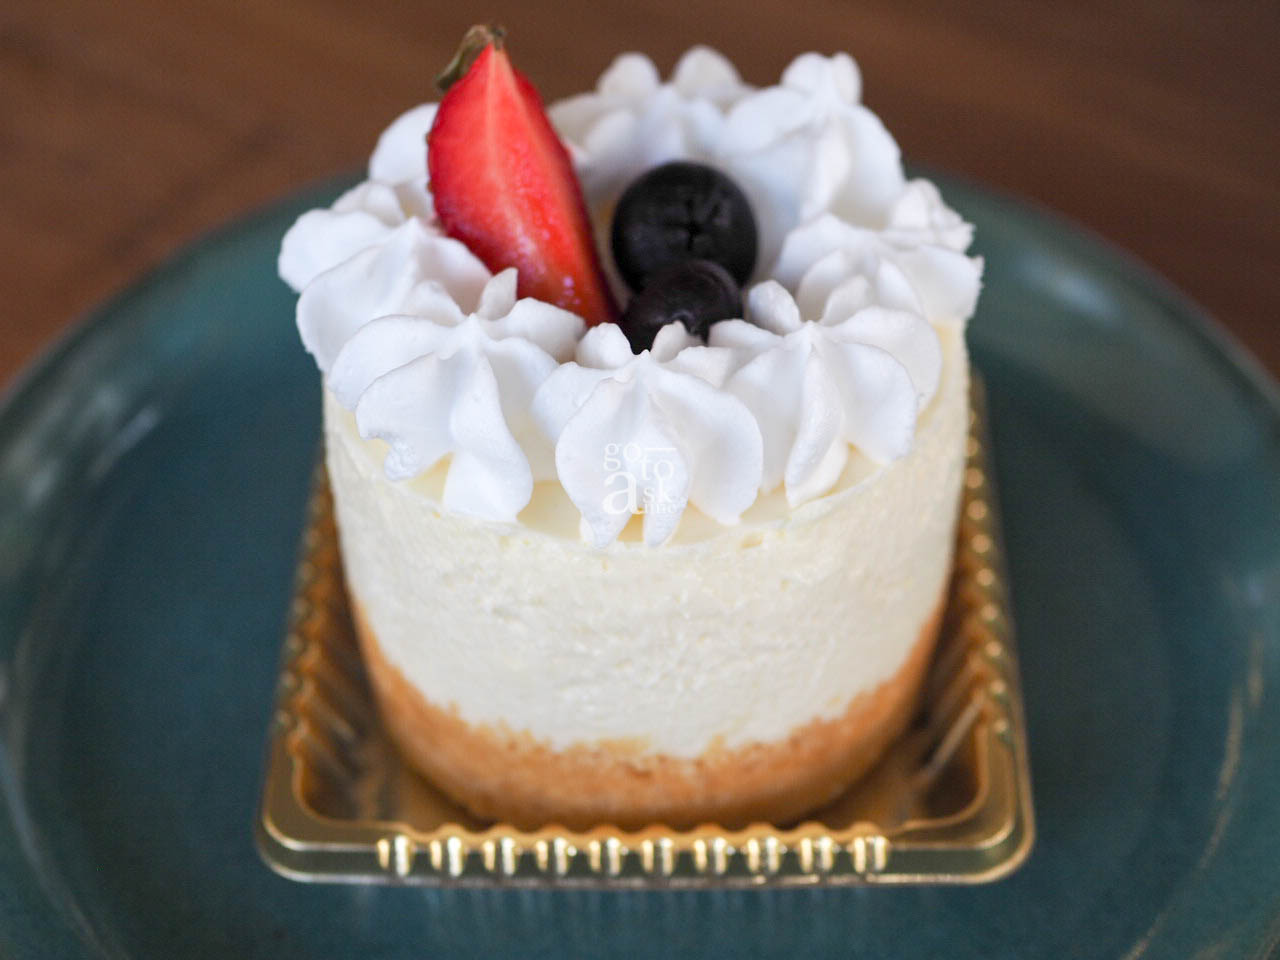 The desserts are by a Homemade Market Alumni, Lanna Patisserie. This is the Blueberry cheesecake.